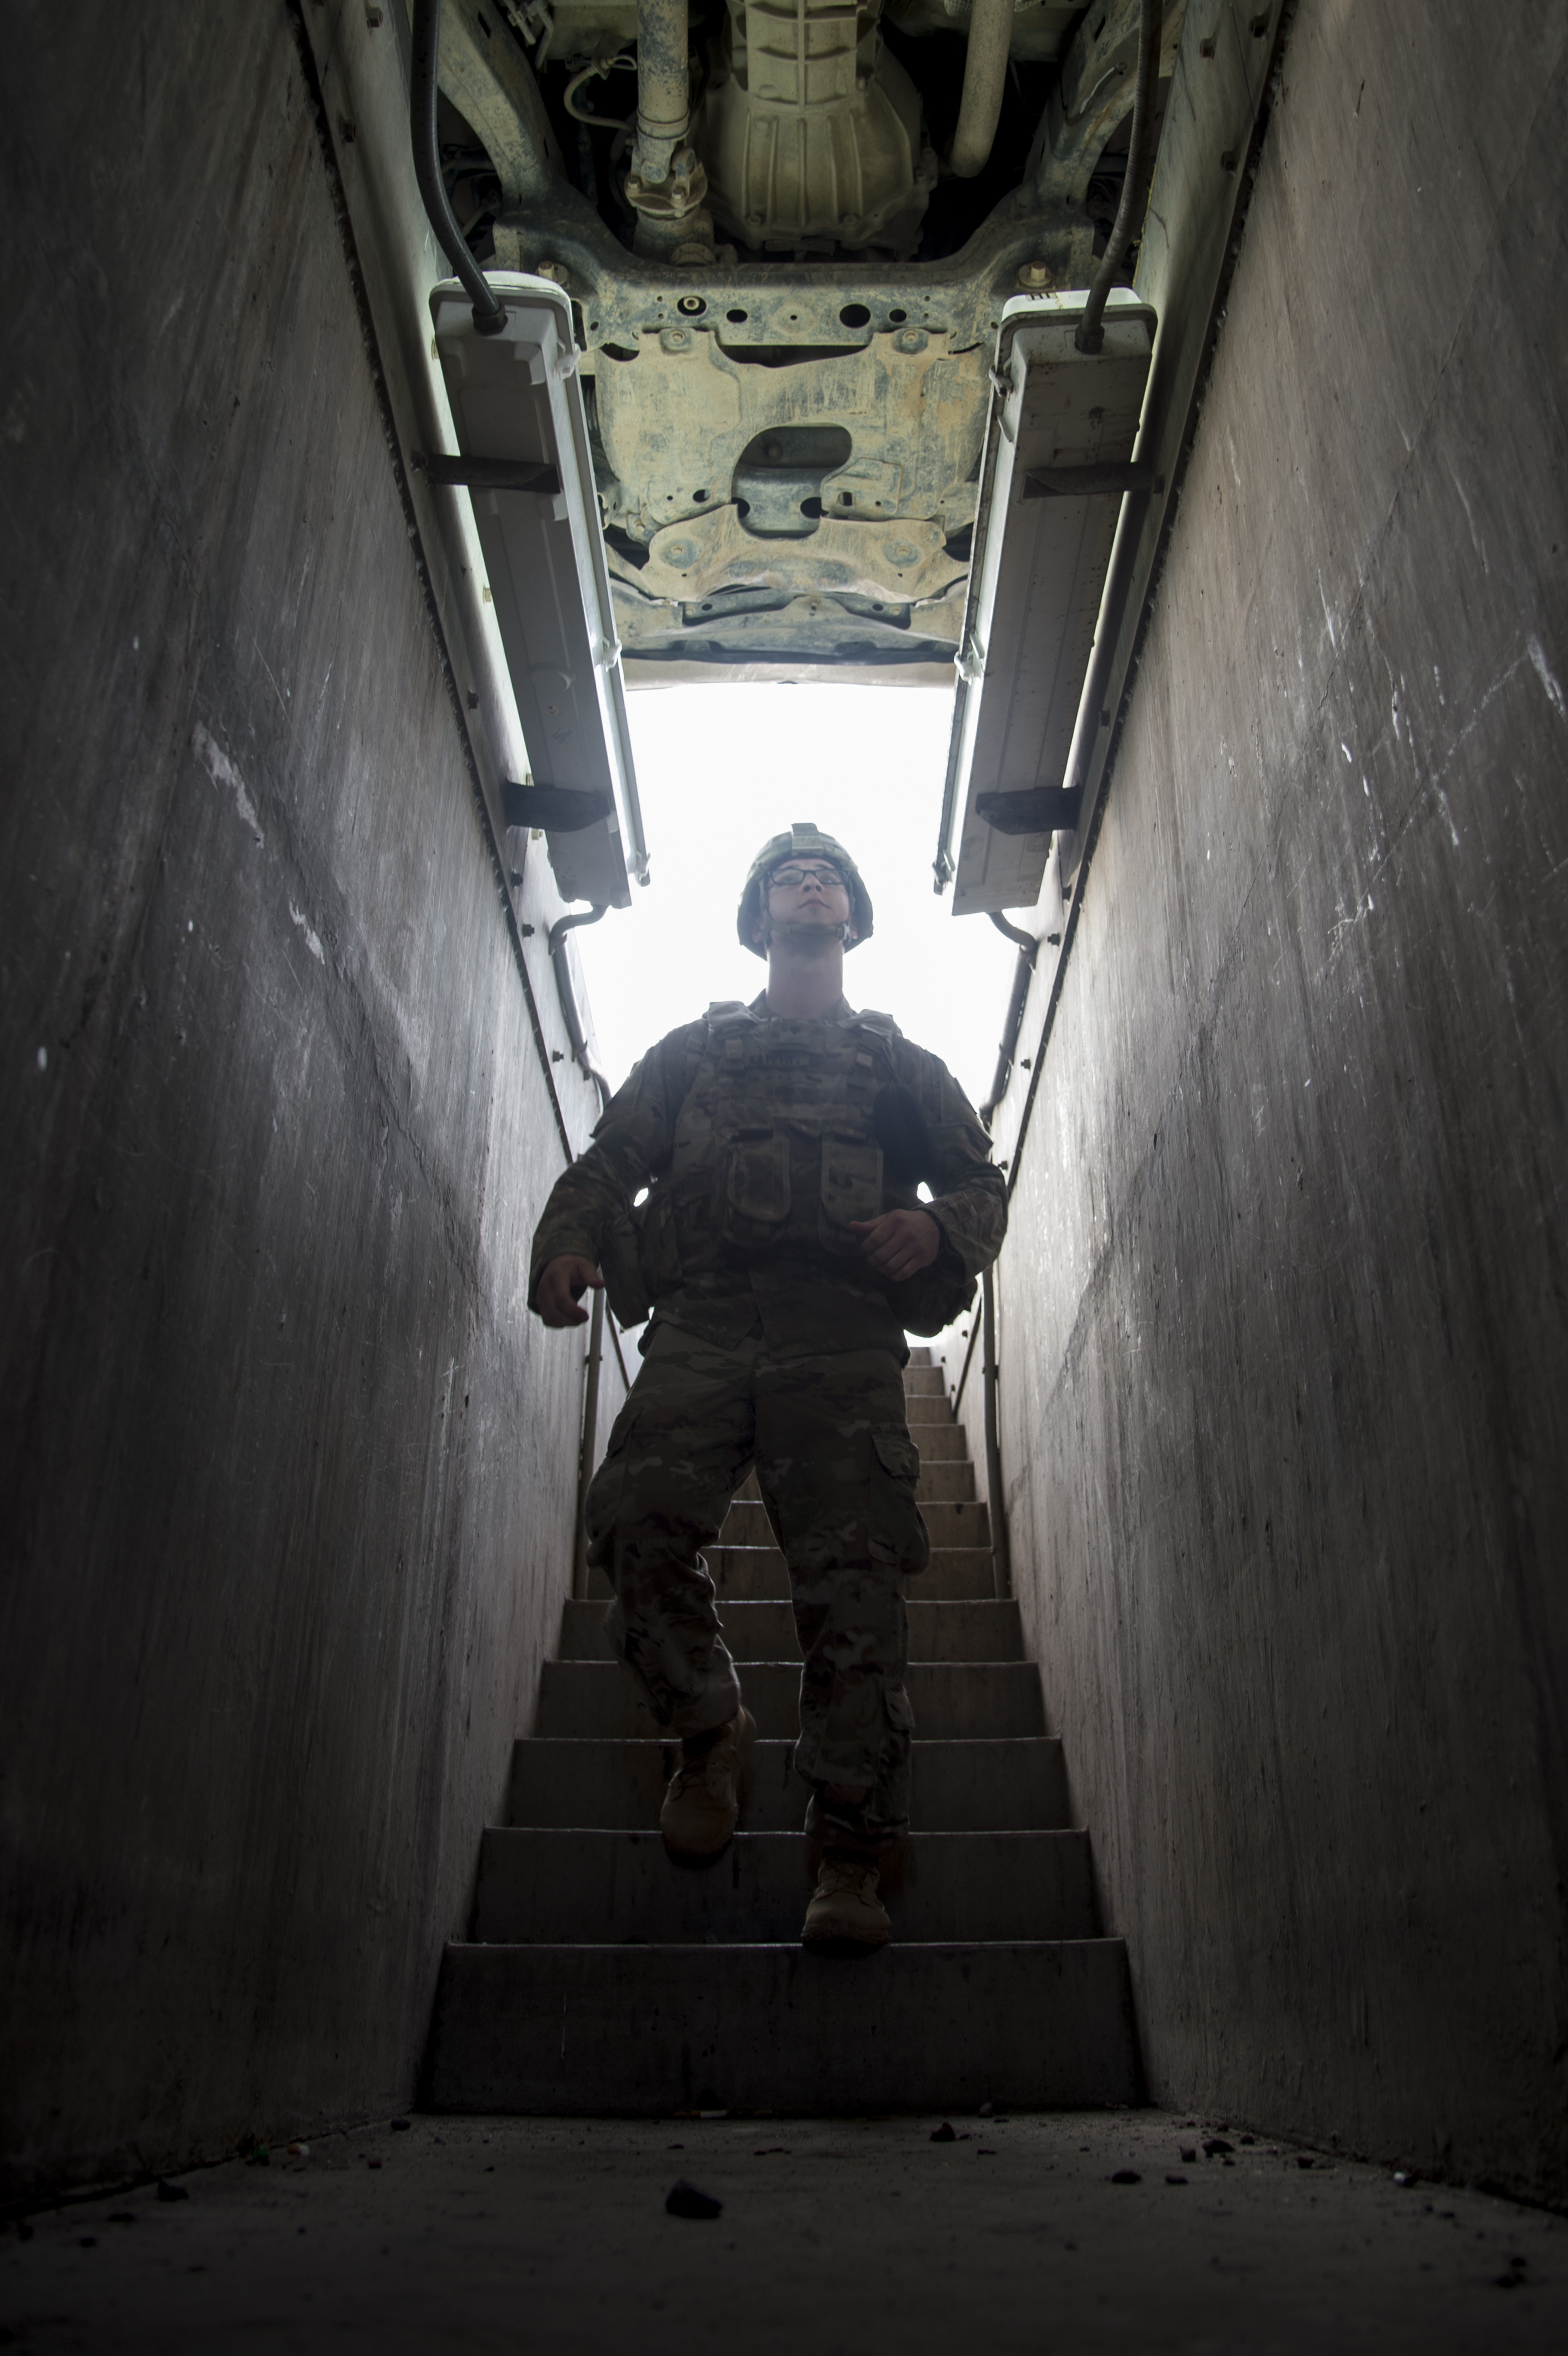 Spc. Austin Katzer,1st Battalion, 153rd Infantry Regiment, deployed with the Combined Joint Task Force-Horn of Africa (CJTF-HOA) in Camp Lemonnier, Djibouti, inspects the undercarriage of a vehicle as part of a random anti-terrorism measure, June 2, 2017. Soldiers of Alpha company secure the installation 24 hours a day and work with Djiboutian contractors to support efforts in countering regional violent extremist organizations. (U.S. Air National Guard photo by Tech. Sgt. Joe Harwood)